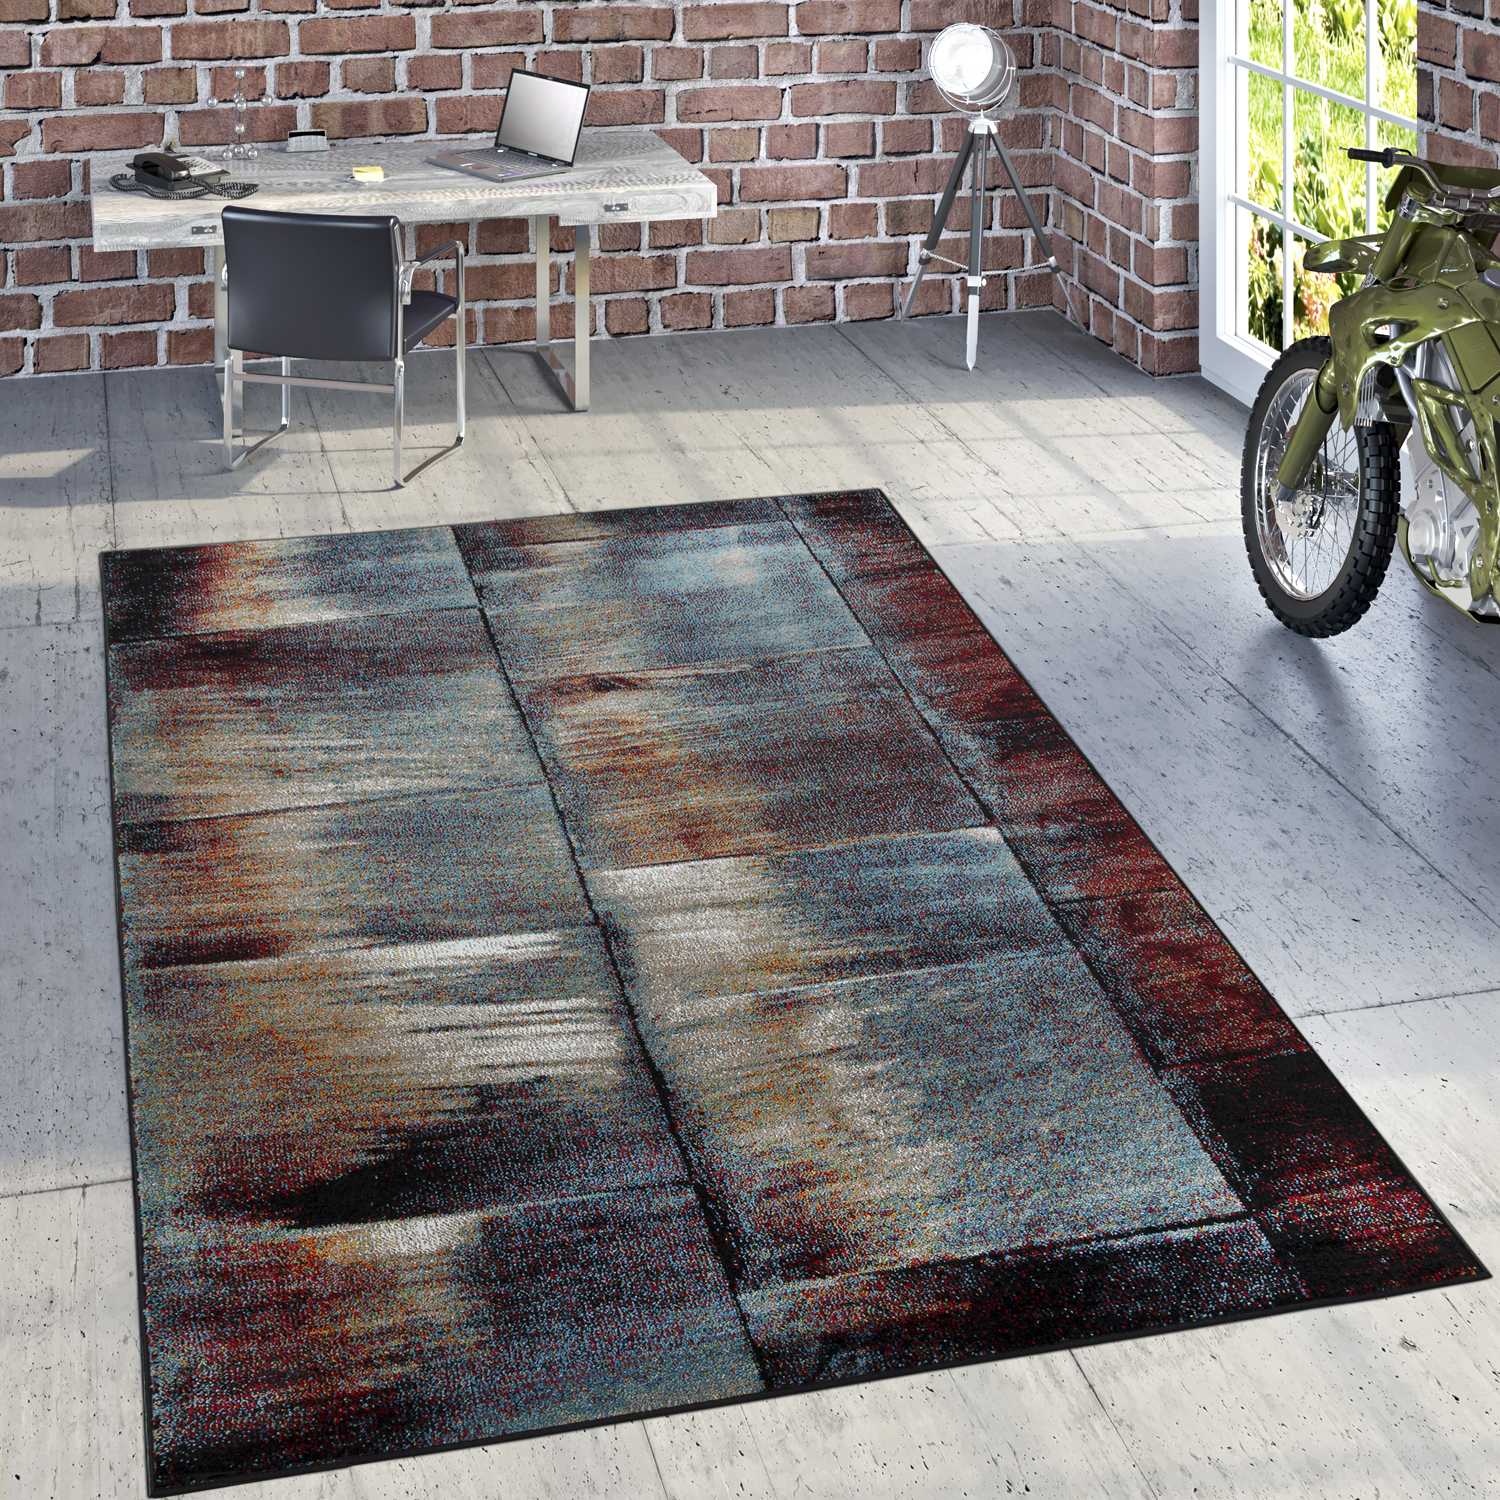 tapis cr ateur moderne salon peinture huile abstrait aspect rouille rouge noir tapis tapis poil ras. Black Bedroom Furniture Sets. Home Design Ideas